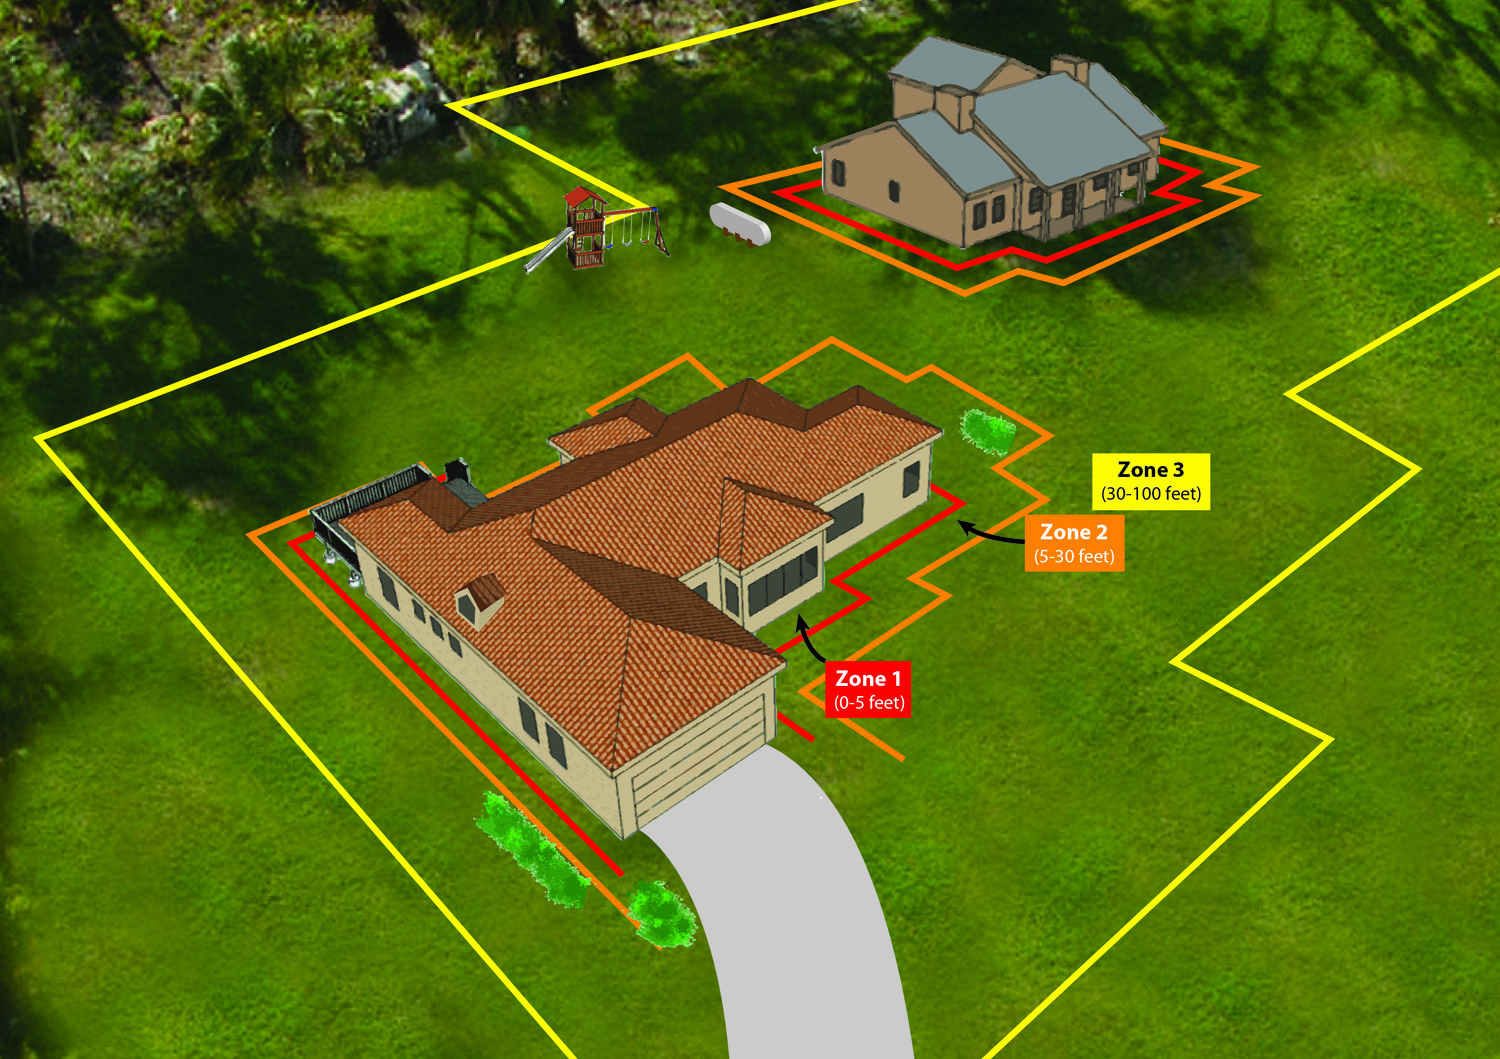 schematic-of-home-property-fire-prevention-clean-up-zones